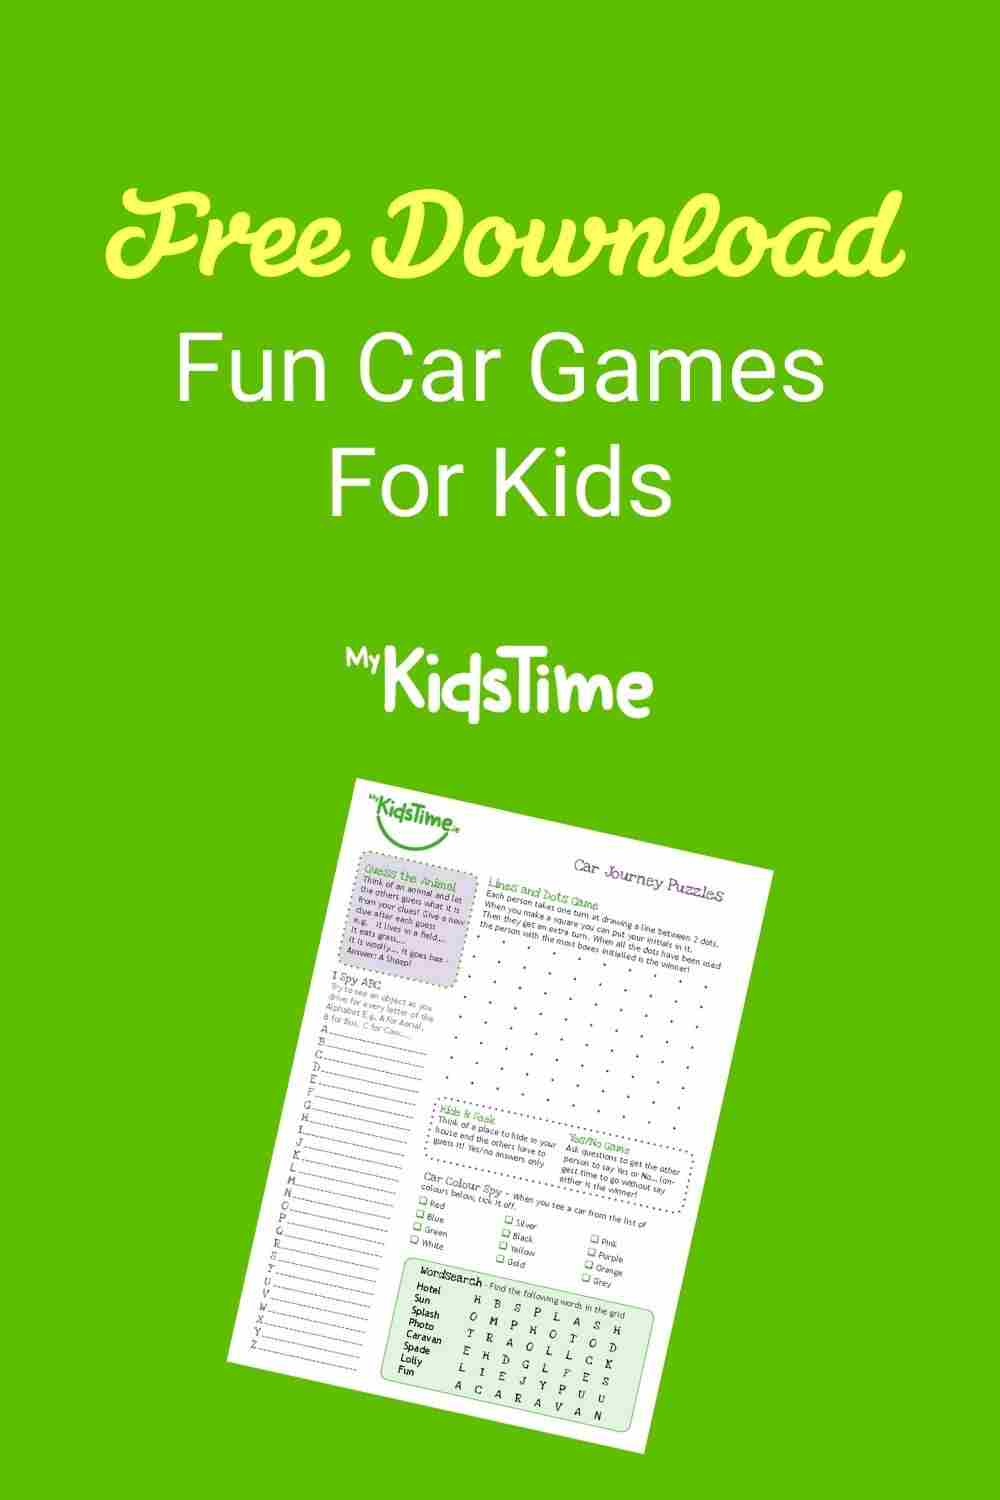 Download car games for kids pinterest